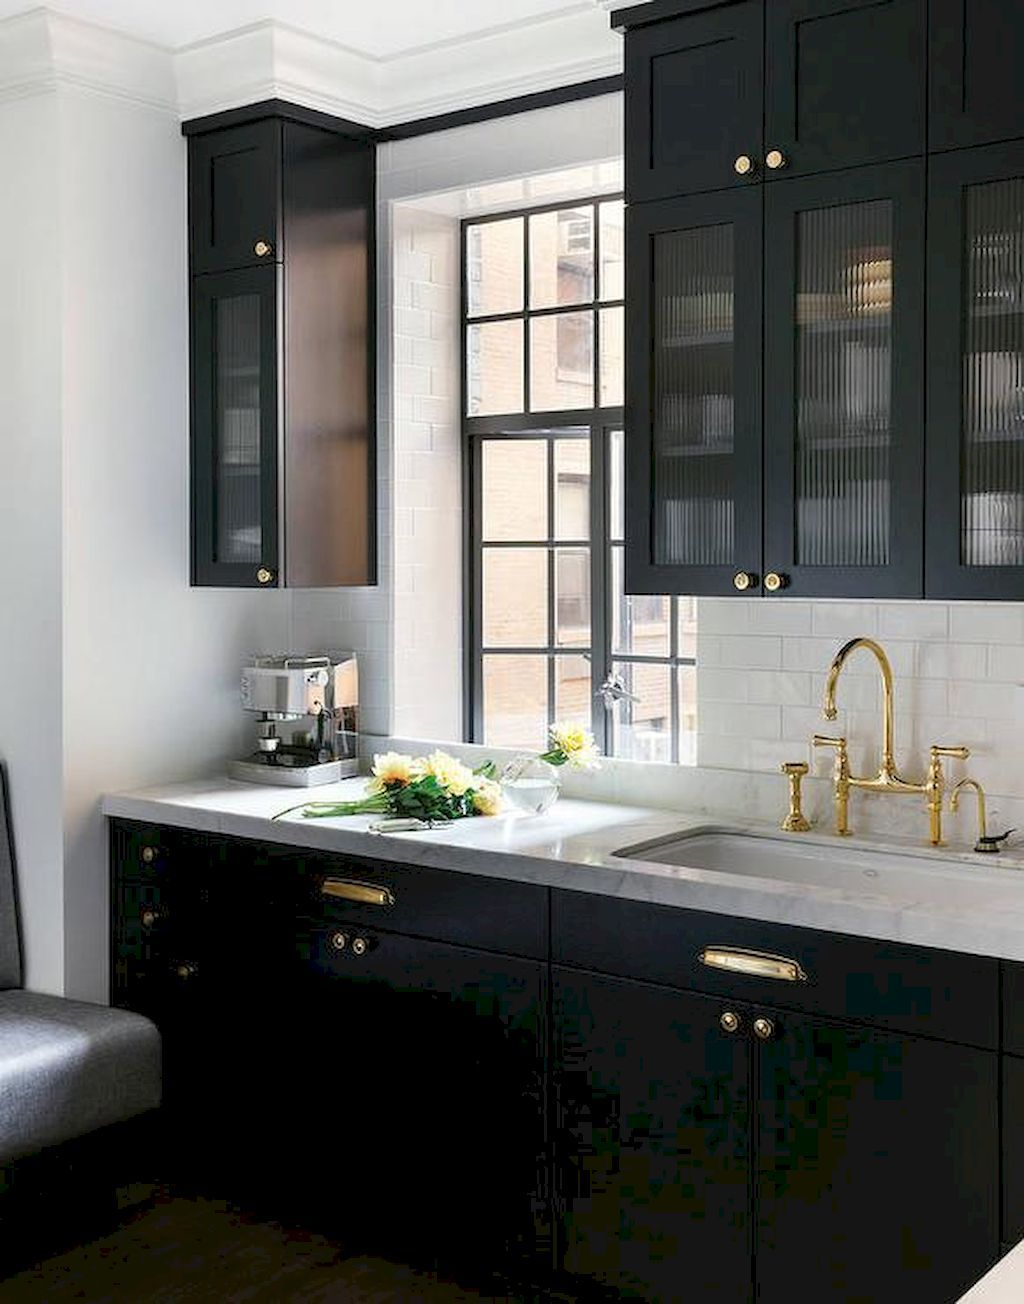 Awesome 60 Black Kitchen Cabinets Design Ideas Https Coachdecor Com 60 Black Kitchen Cabinets De Kitchen Cabinet Design Black Kitchens Black Kitchen Cabinets